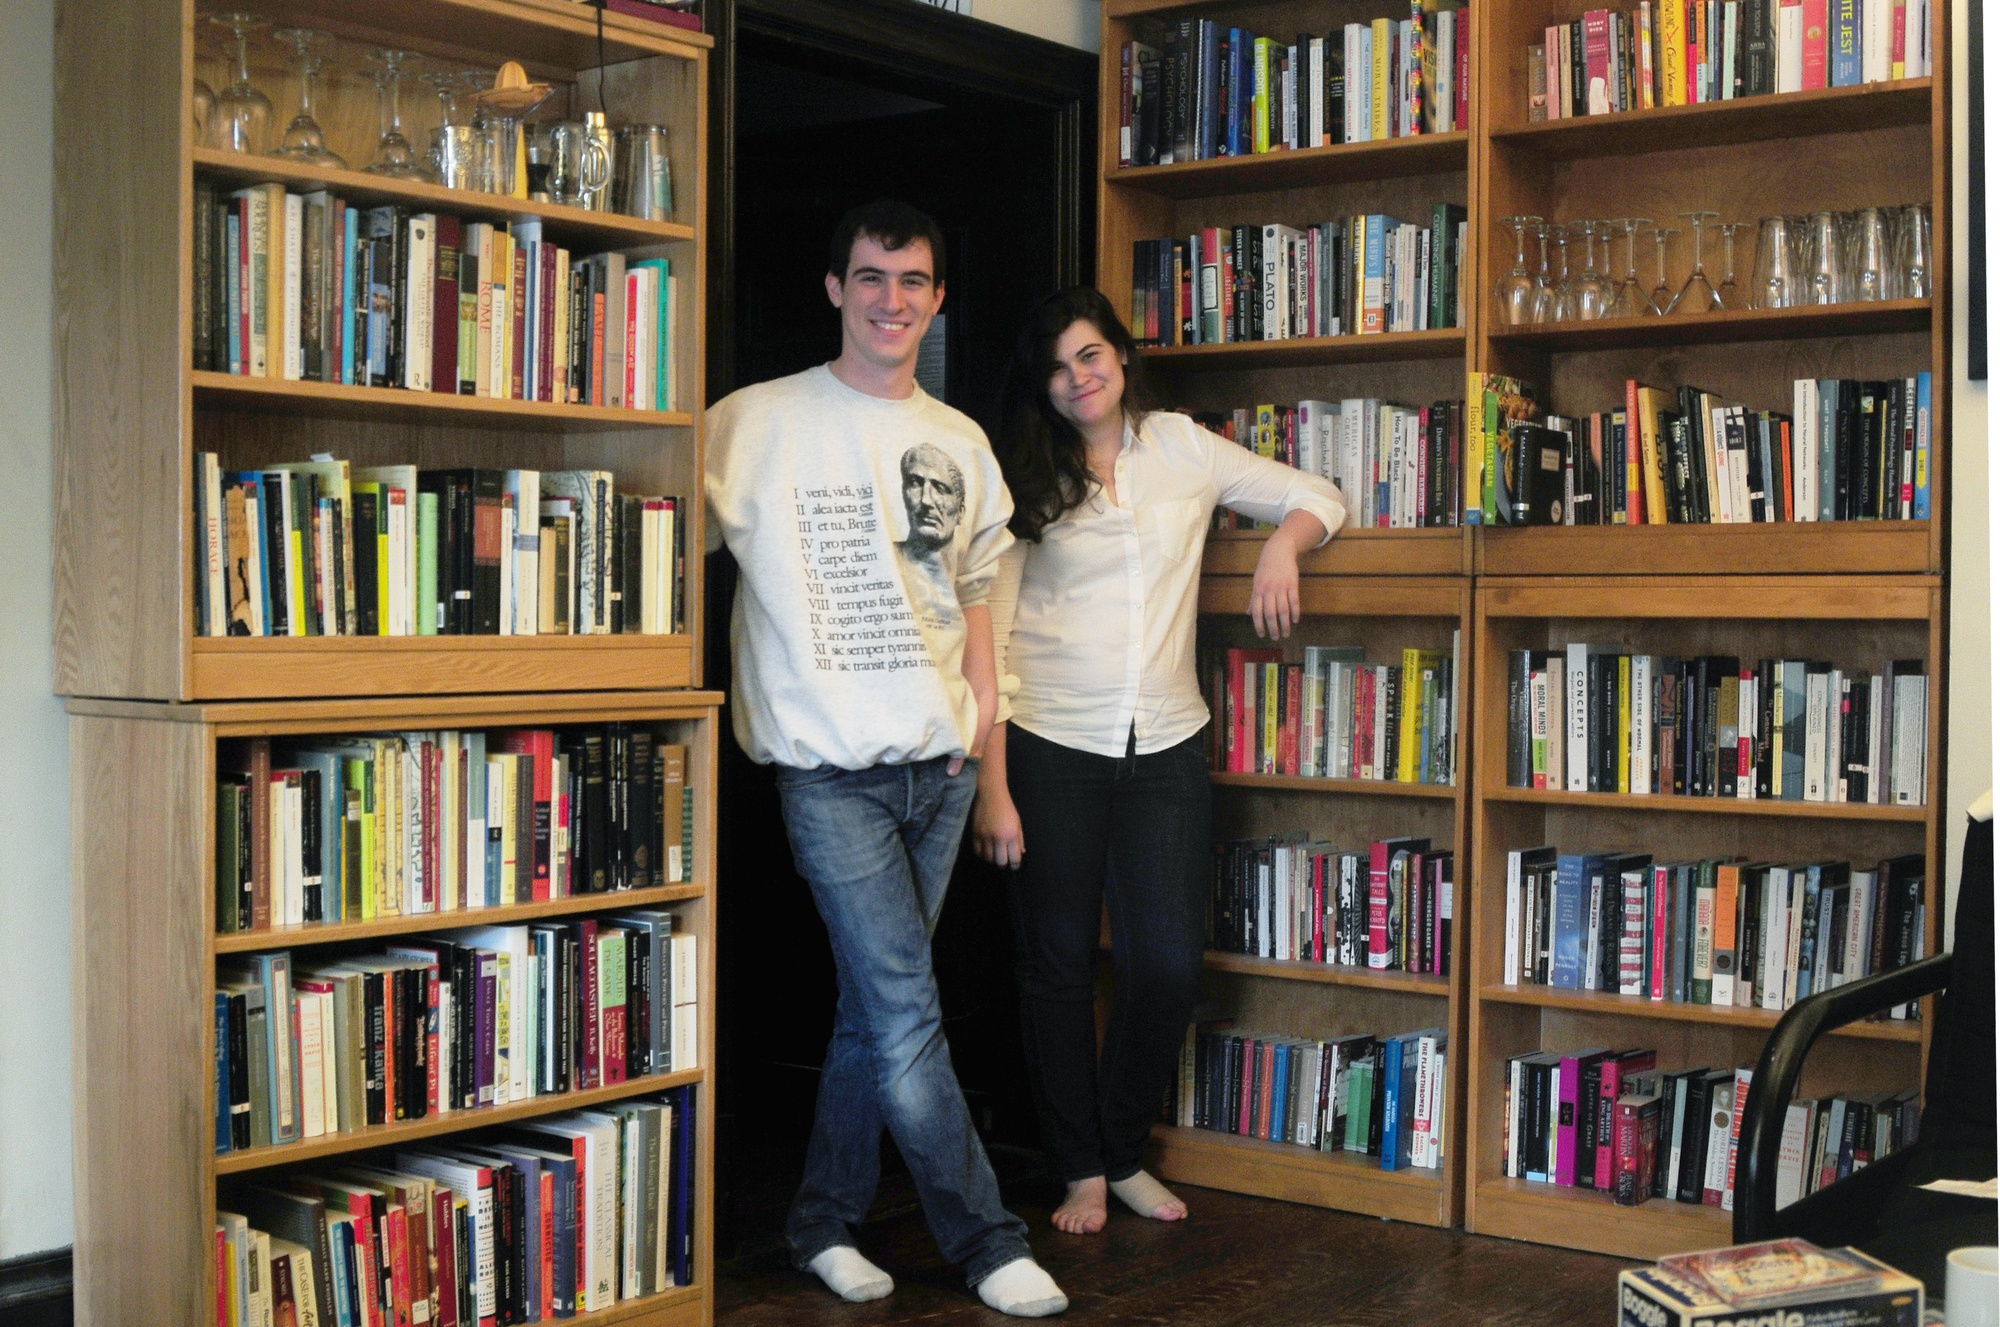 Elliot A. Wilson '15 and Sarah E. Coughlon '15 pose with their book collections. They are good friends but like to get competitive about their reading choices.